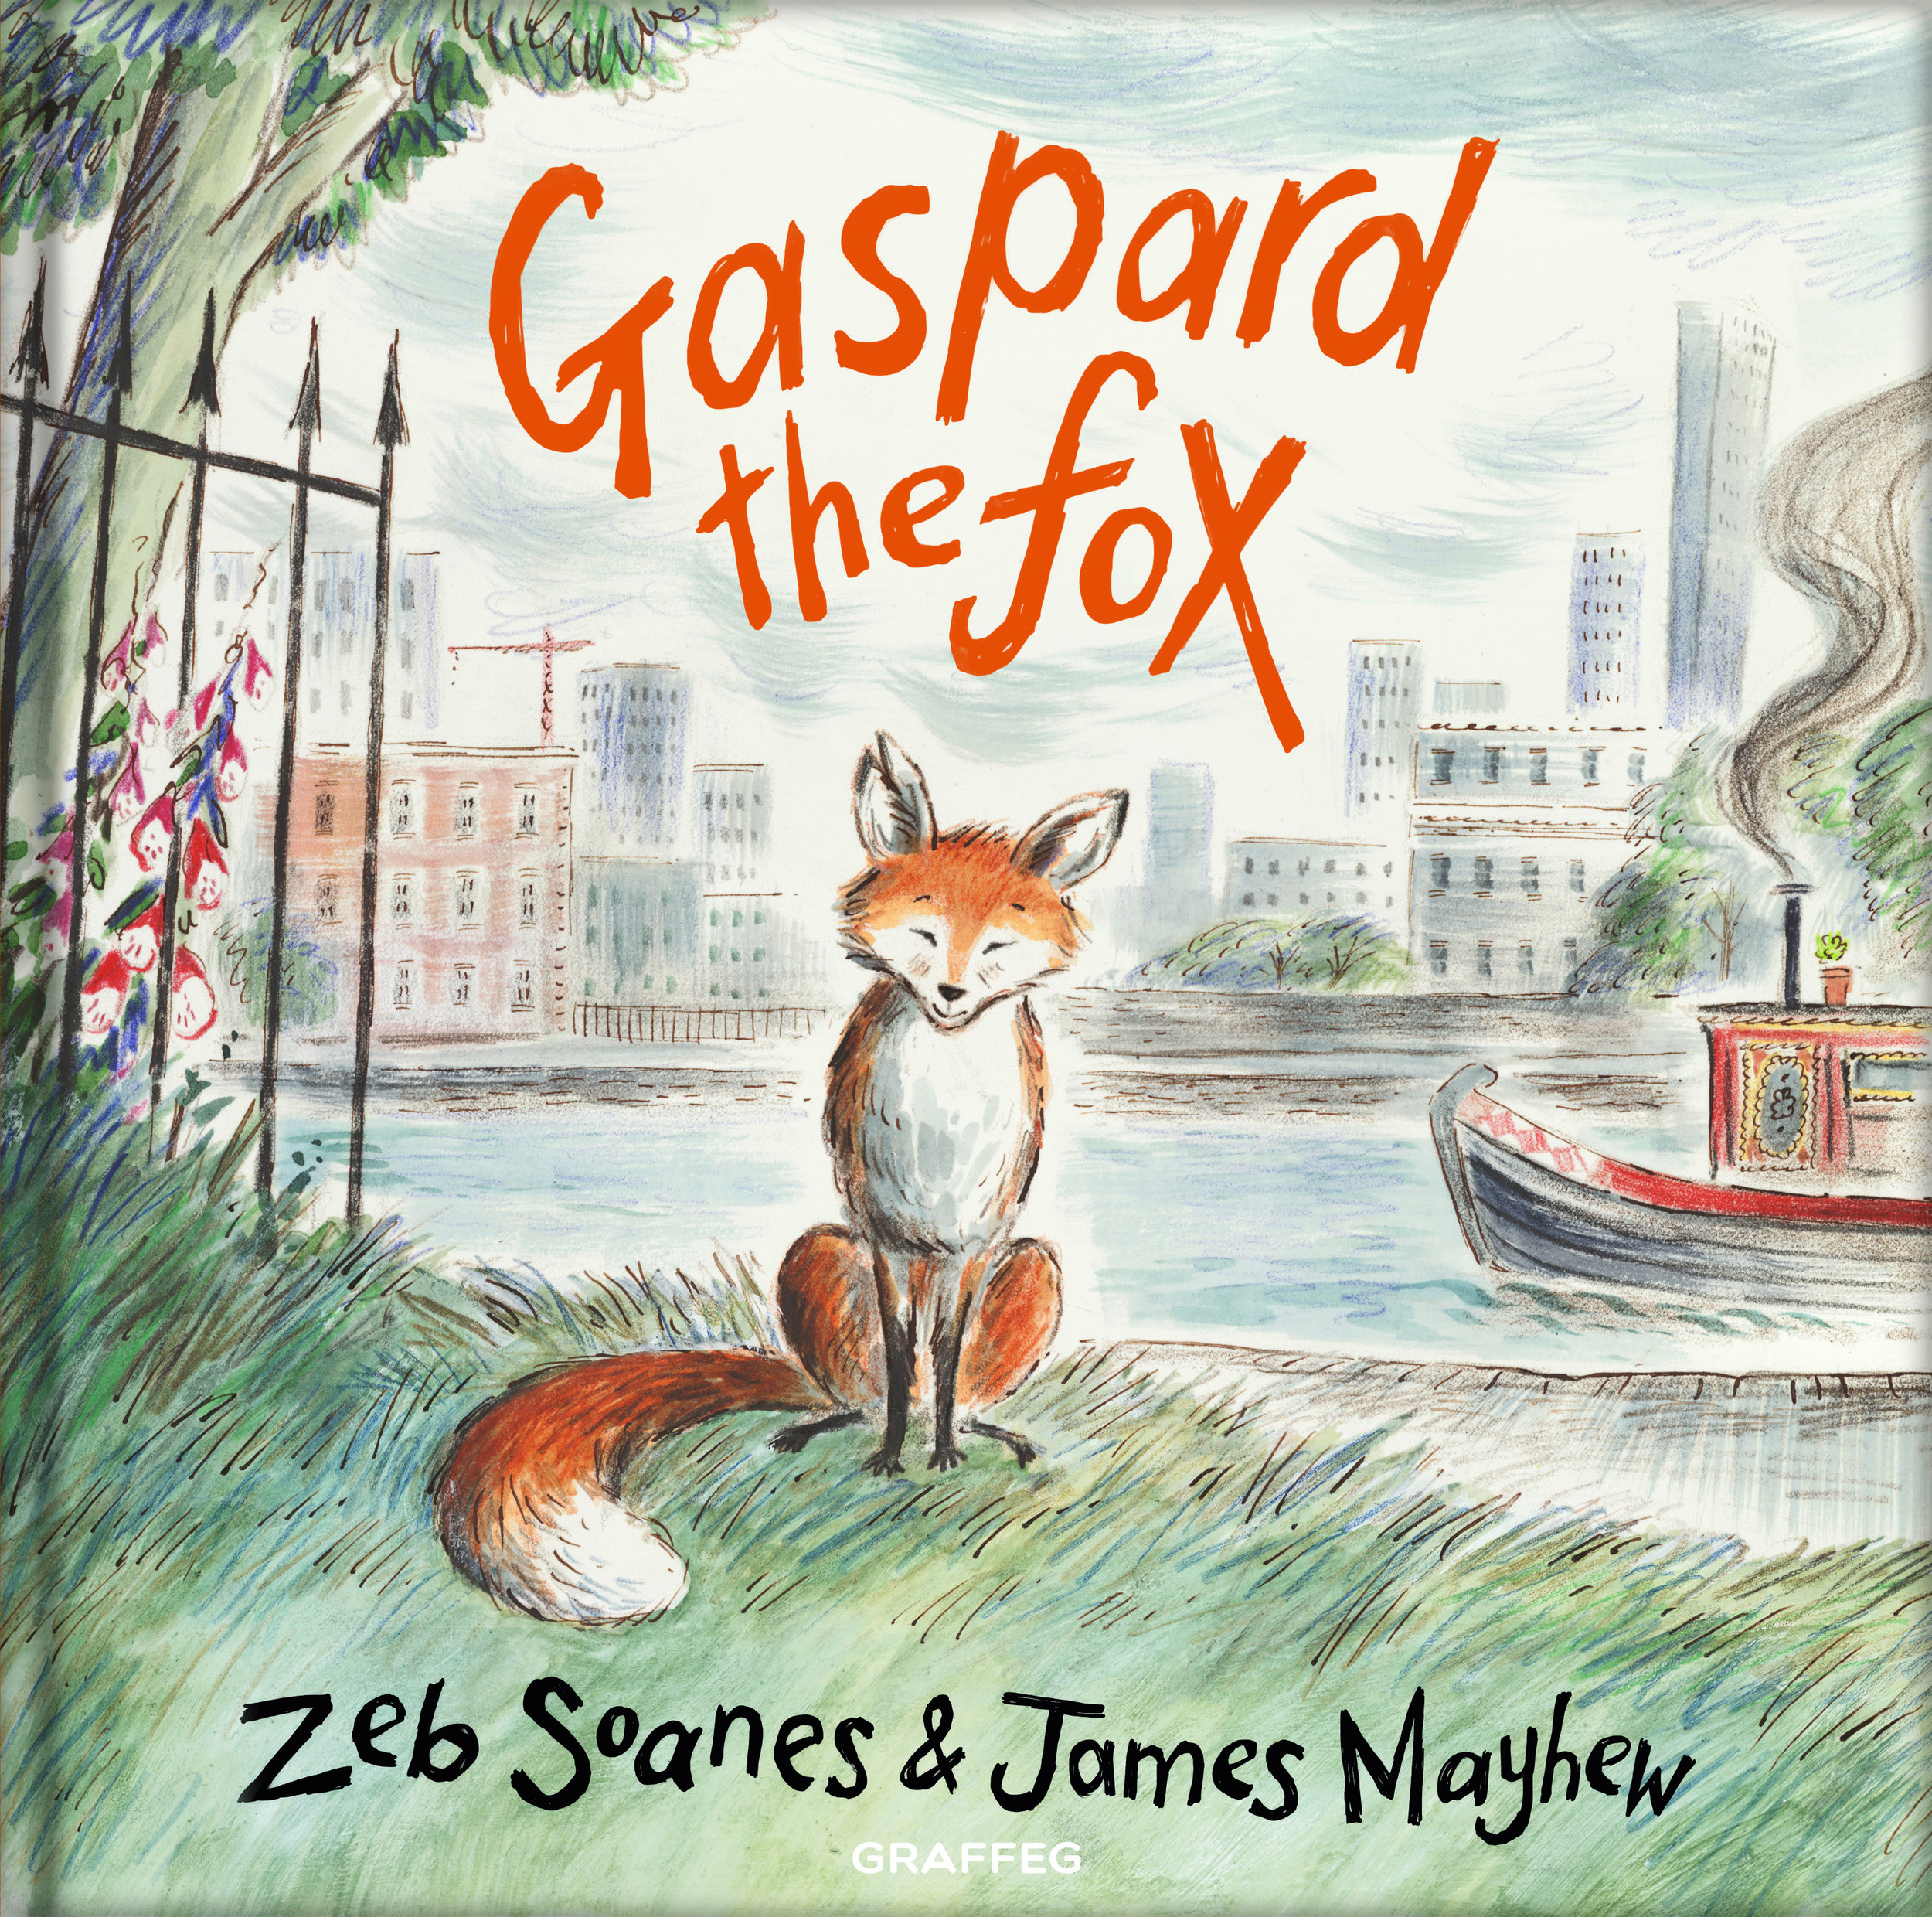 Gaspard the Fox,  published by Graffeg, May 2018